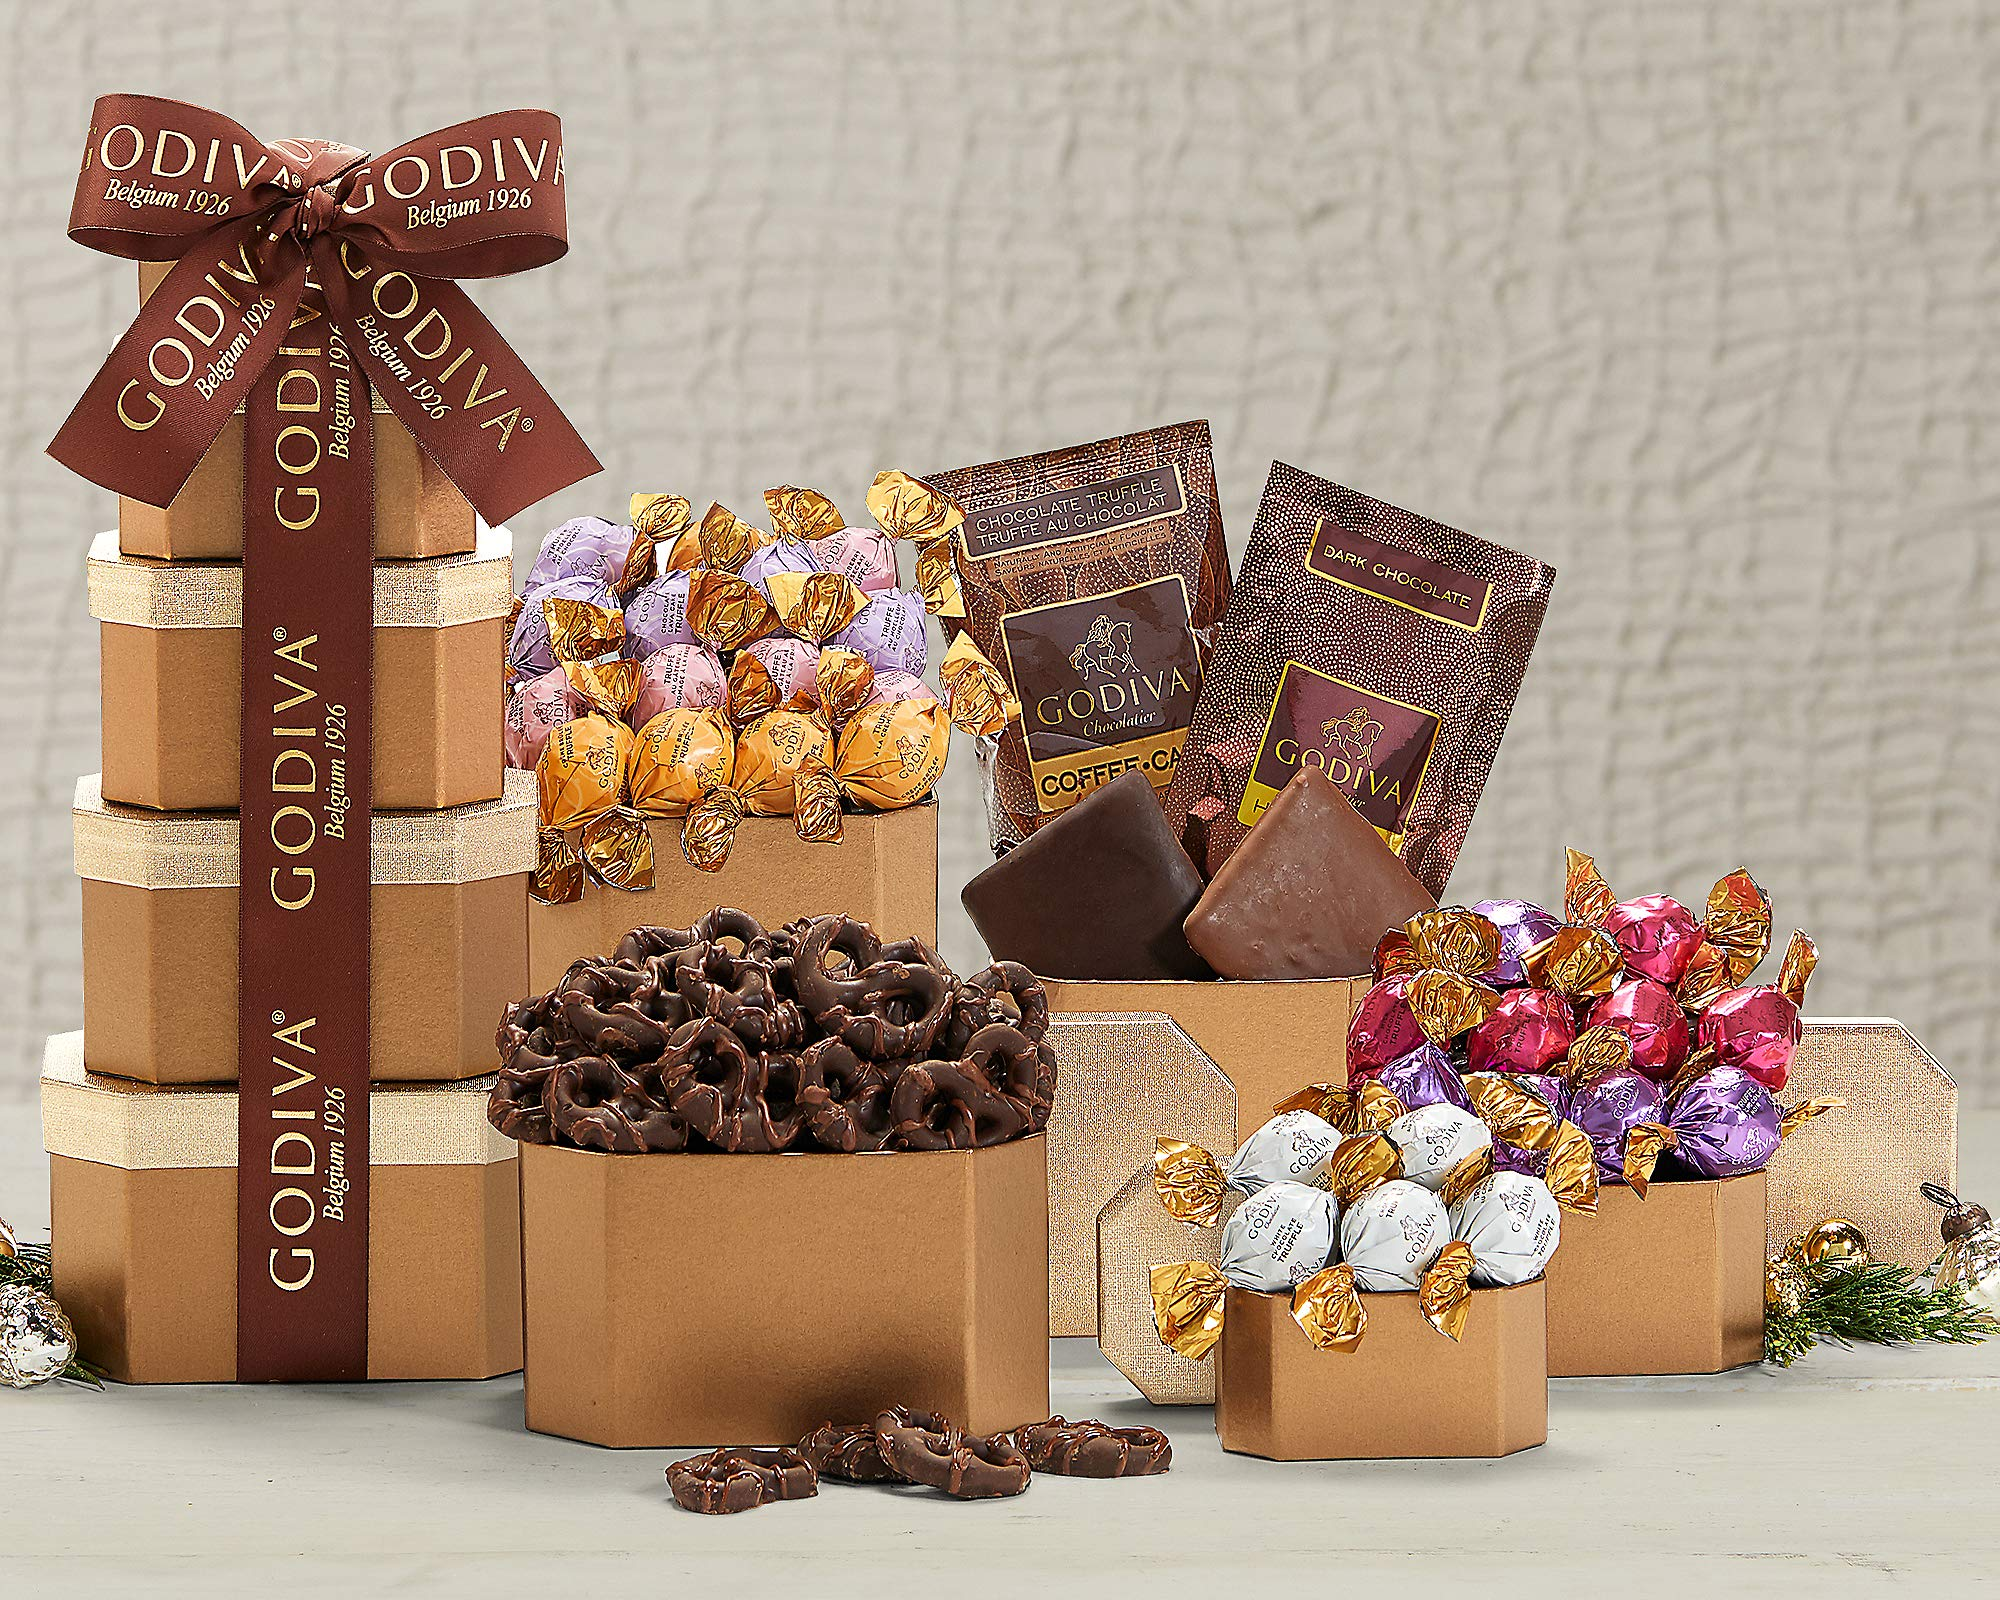 Wine Country Gift Baskets Godiva Milk & Dark Chocolate Tower by Wine Country Gift Baskets (Image #2)